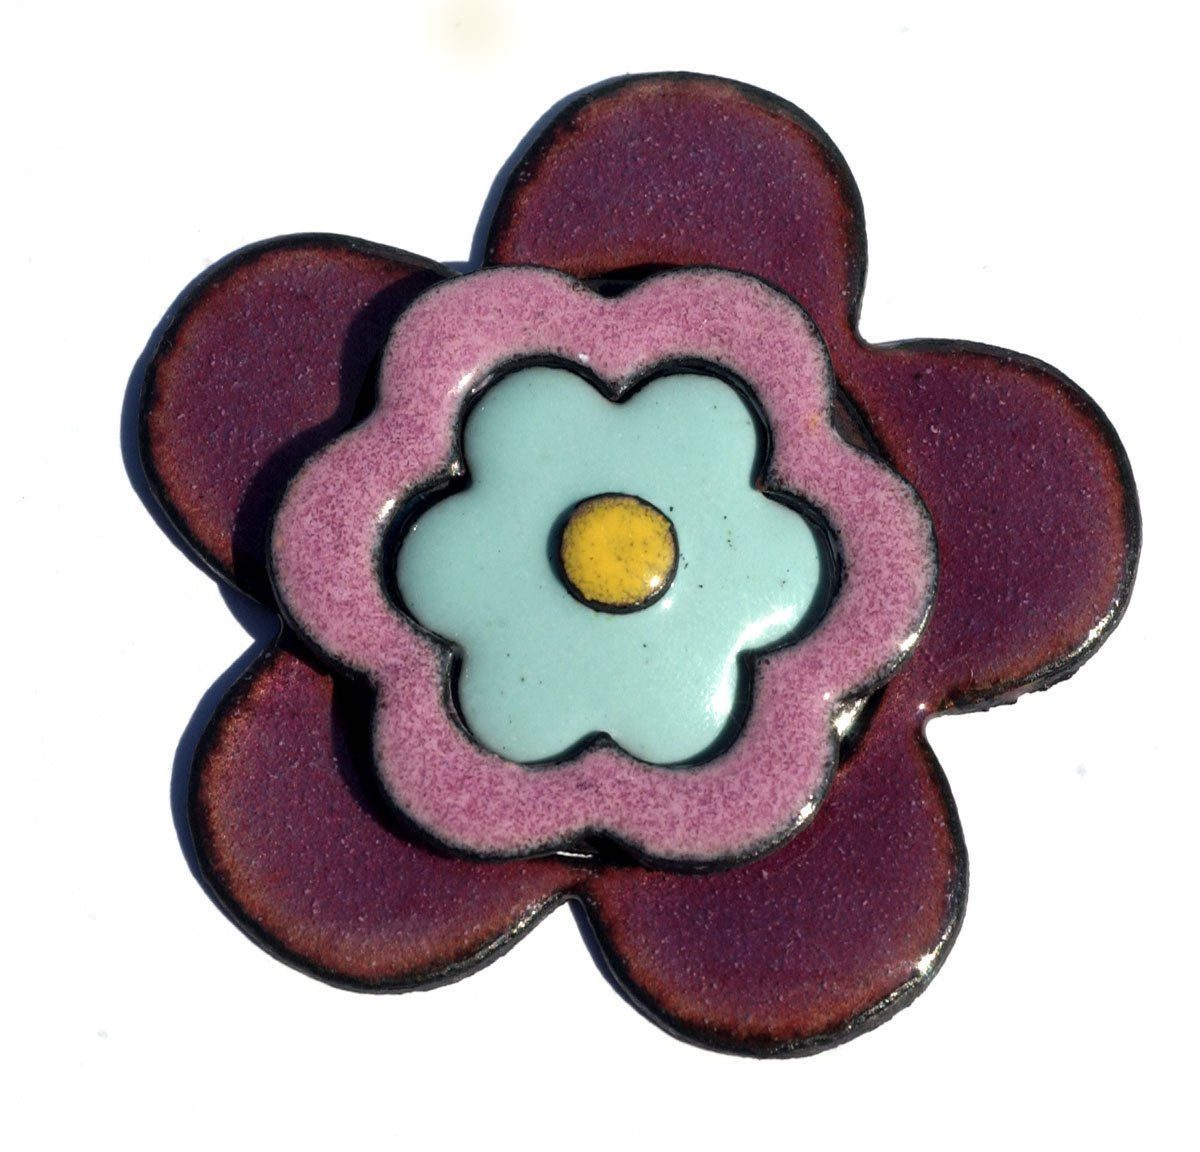 Heart in Lotus Flowers Pattern Classic Shape 24.5mm x 20.5mm 22g Blanks Cutout for Enameling Stamping Texturing Variety of Metals